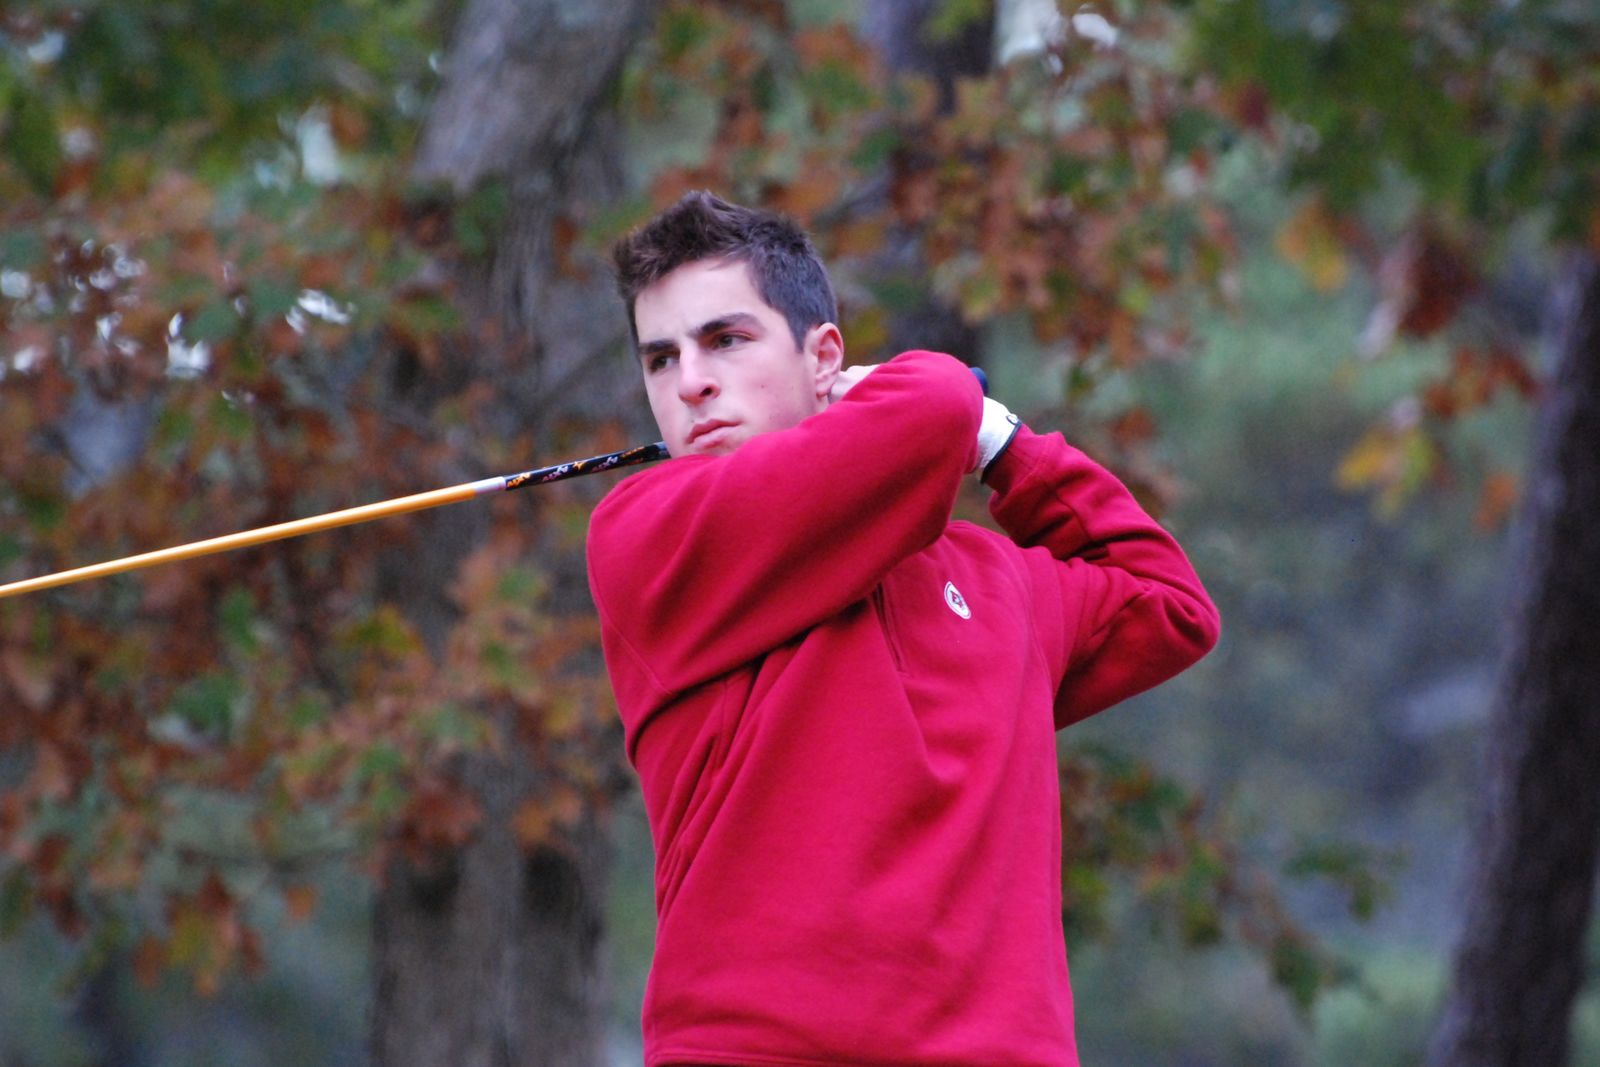 Teams from 37 colleges and universities across New England gathered Sunday through Tuesday, October 17-19, 20010 for the 76th annual New England Intercollegiate Golf Championship. The event attracted 182 golfers to The Captains Golf Course and its 36-hole layout on Cape Cod.